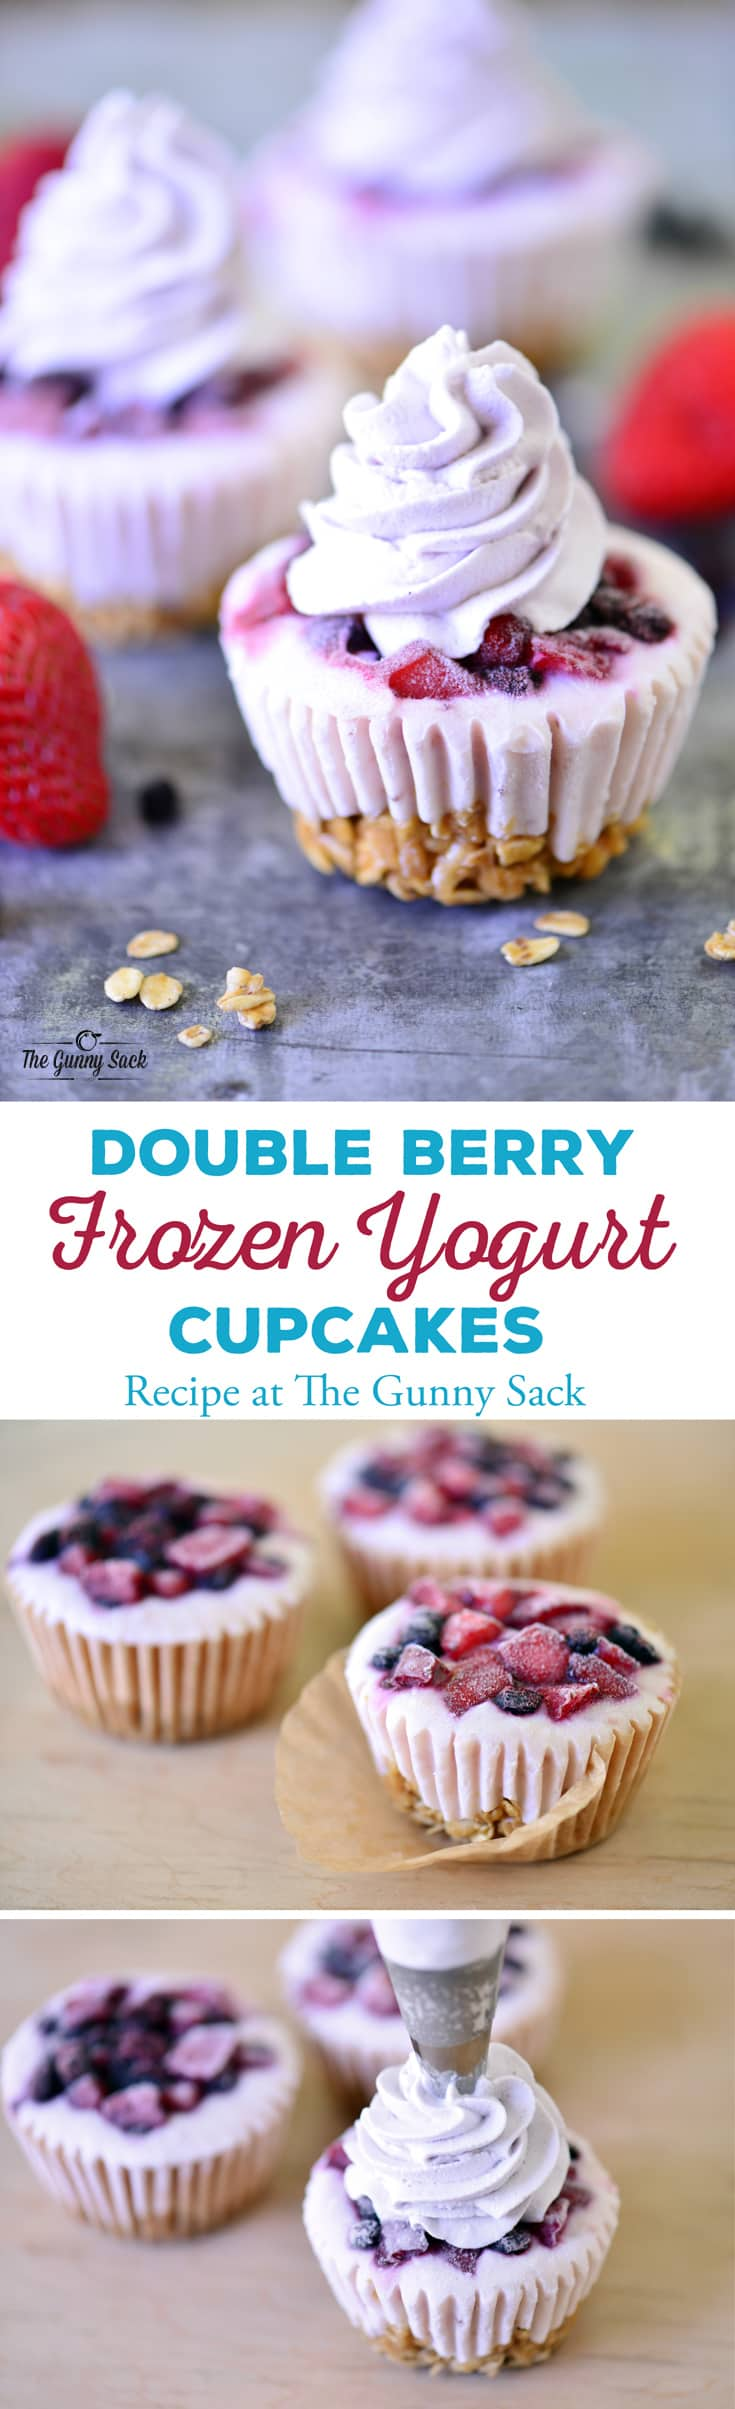 Double Berry Frozen Yogurt Cupcakes | thegunnysack.com